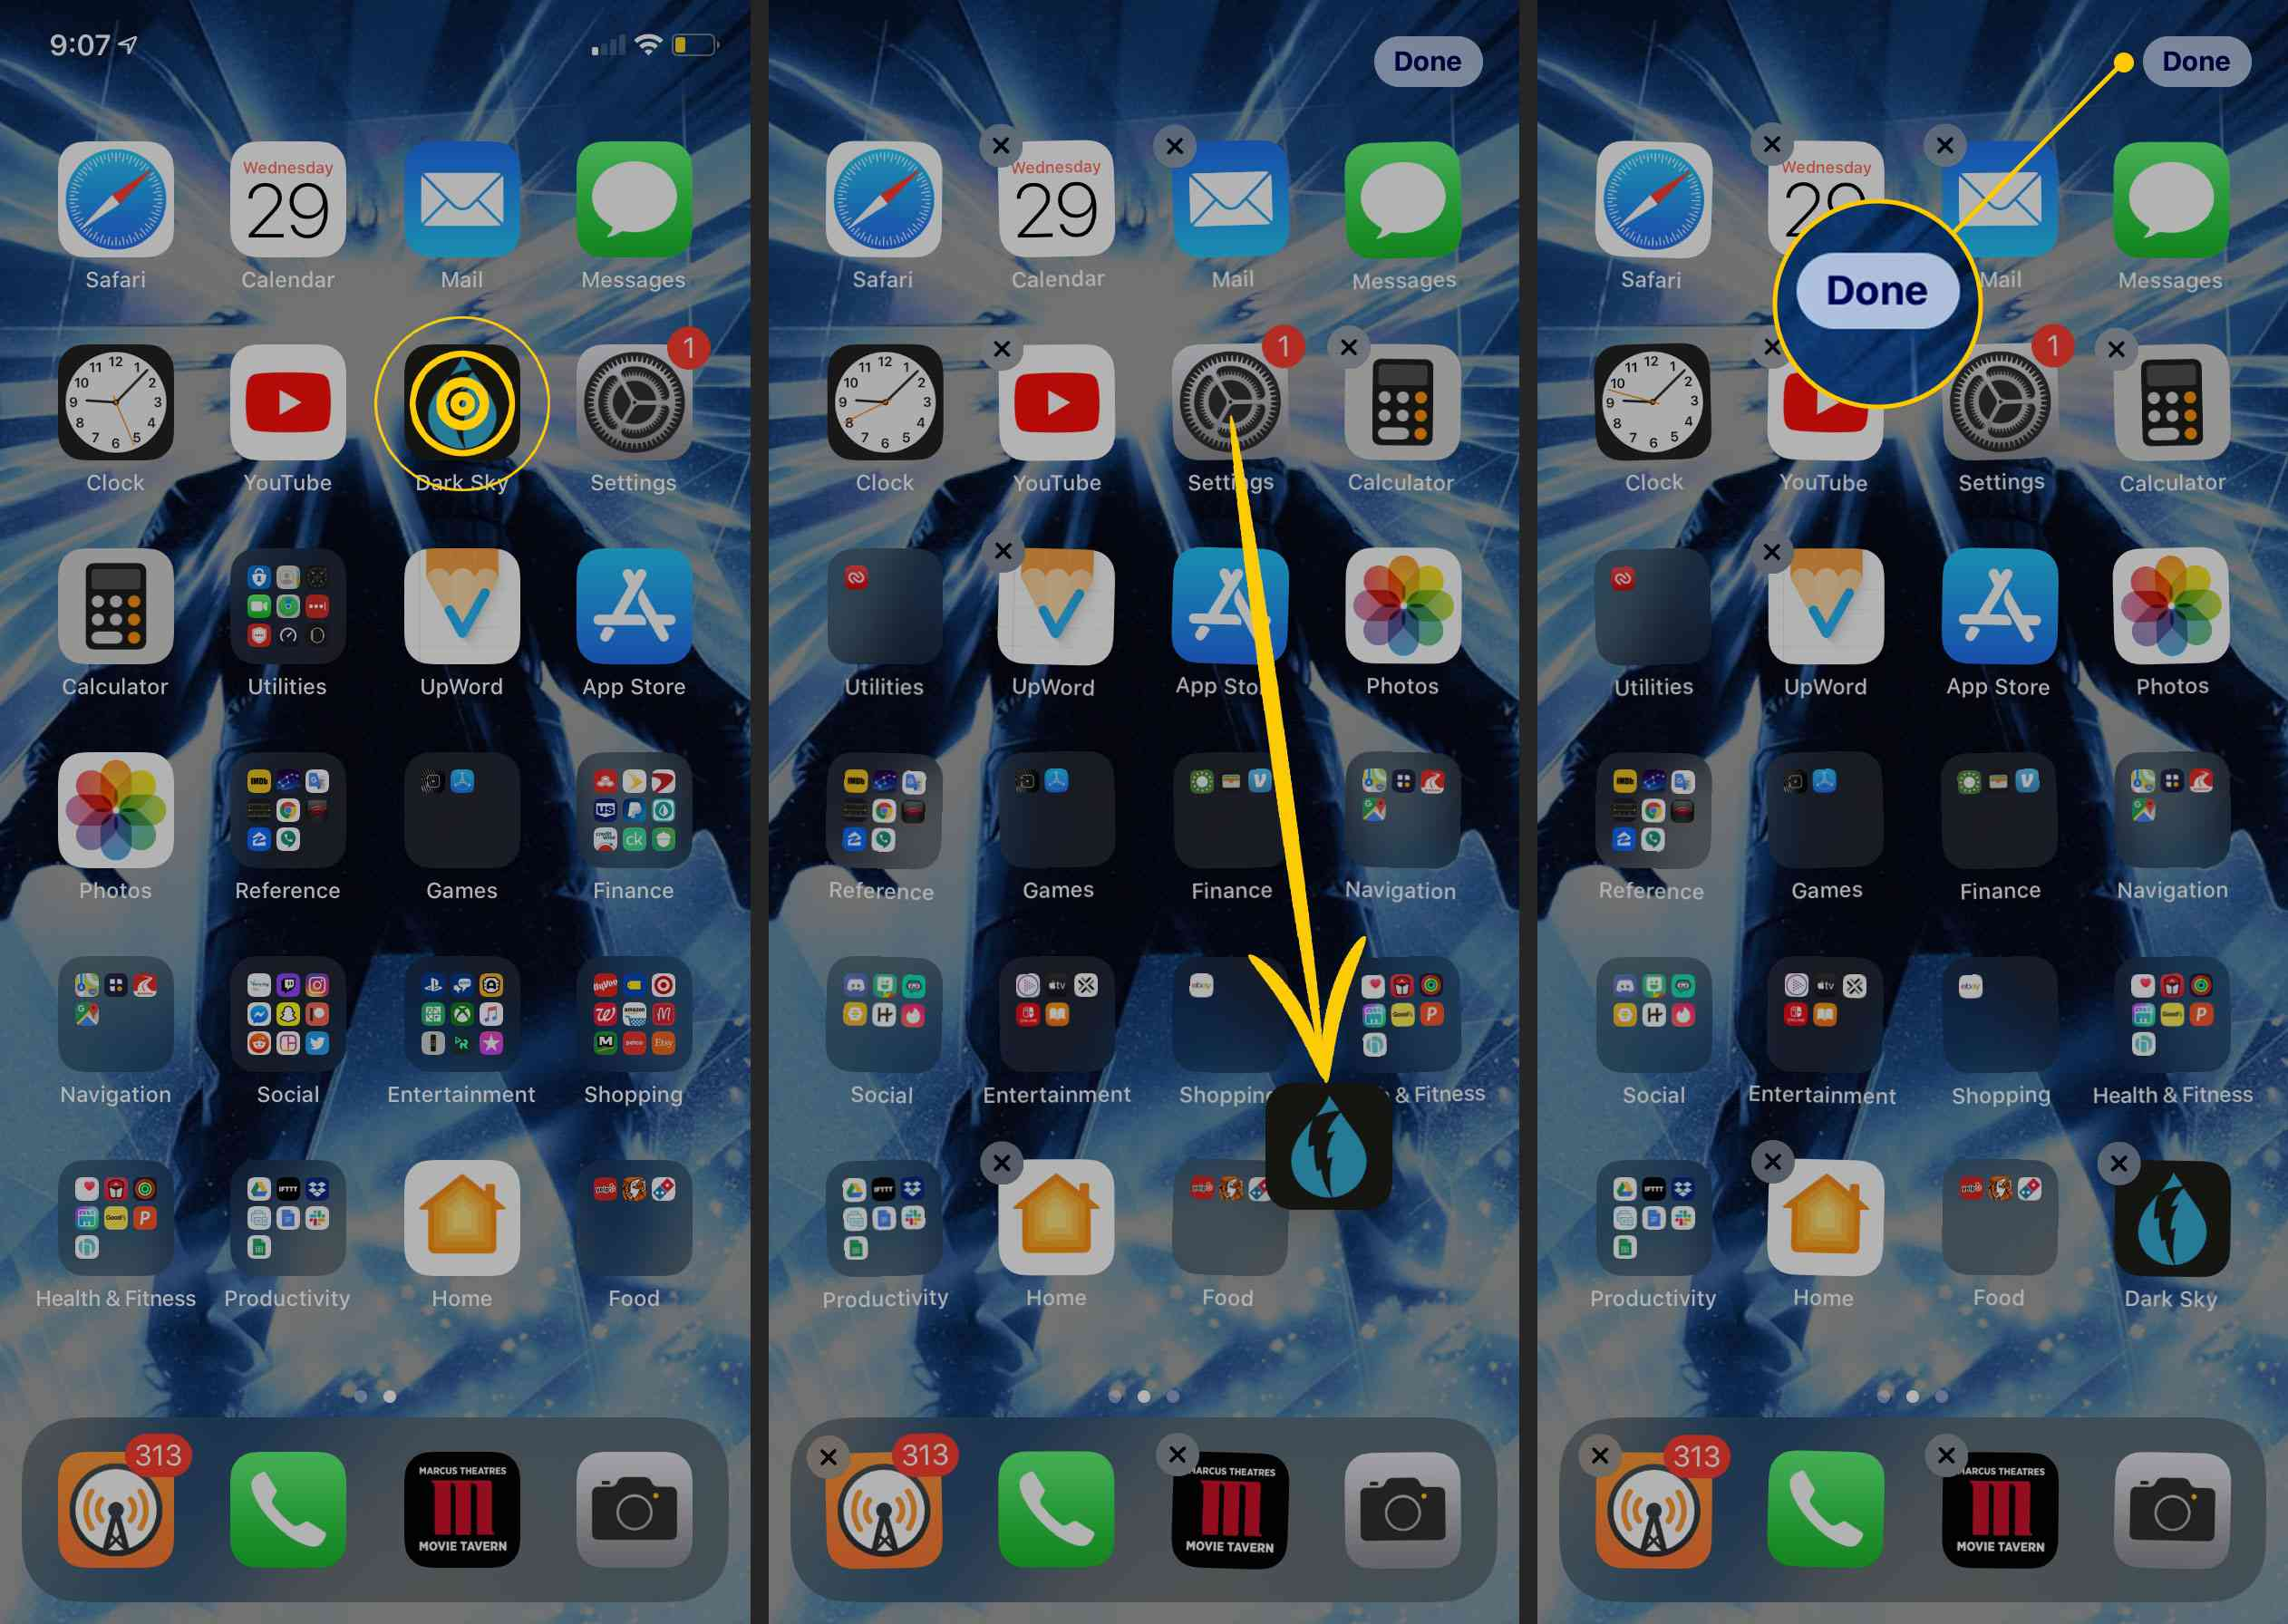 Moving an app on the iPhone home screen